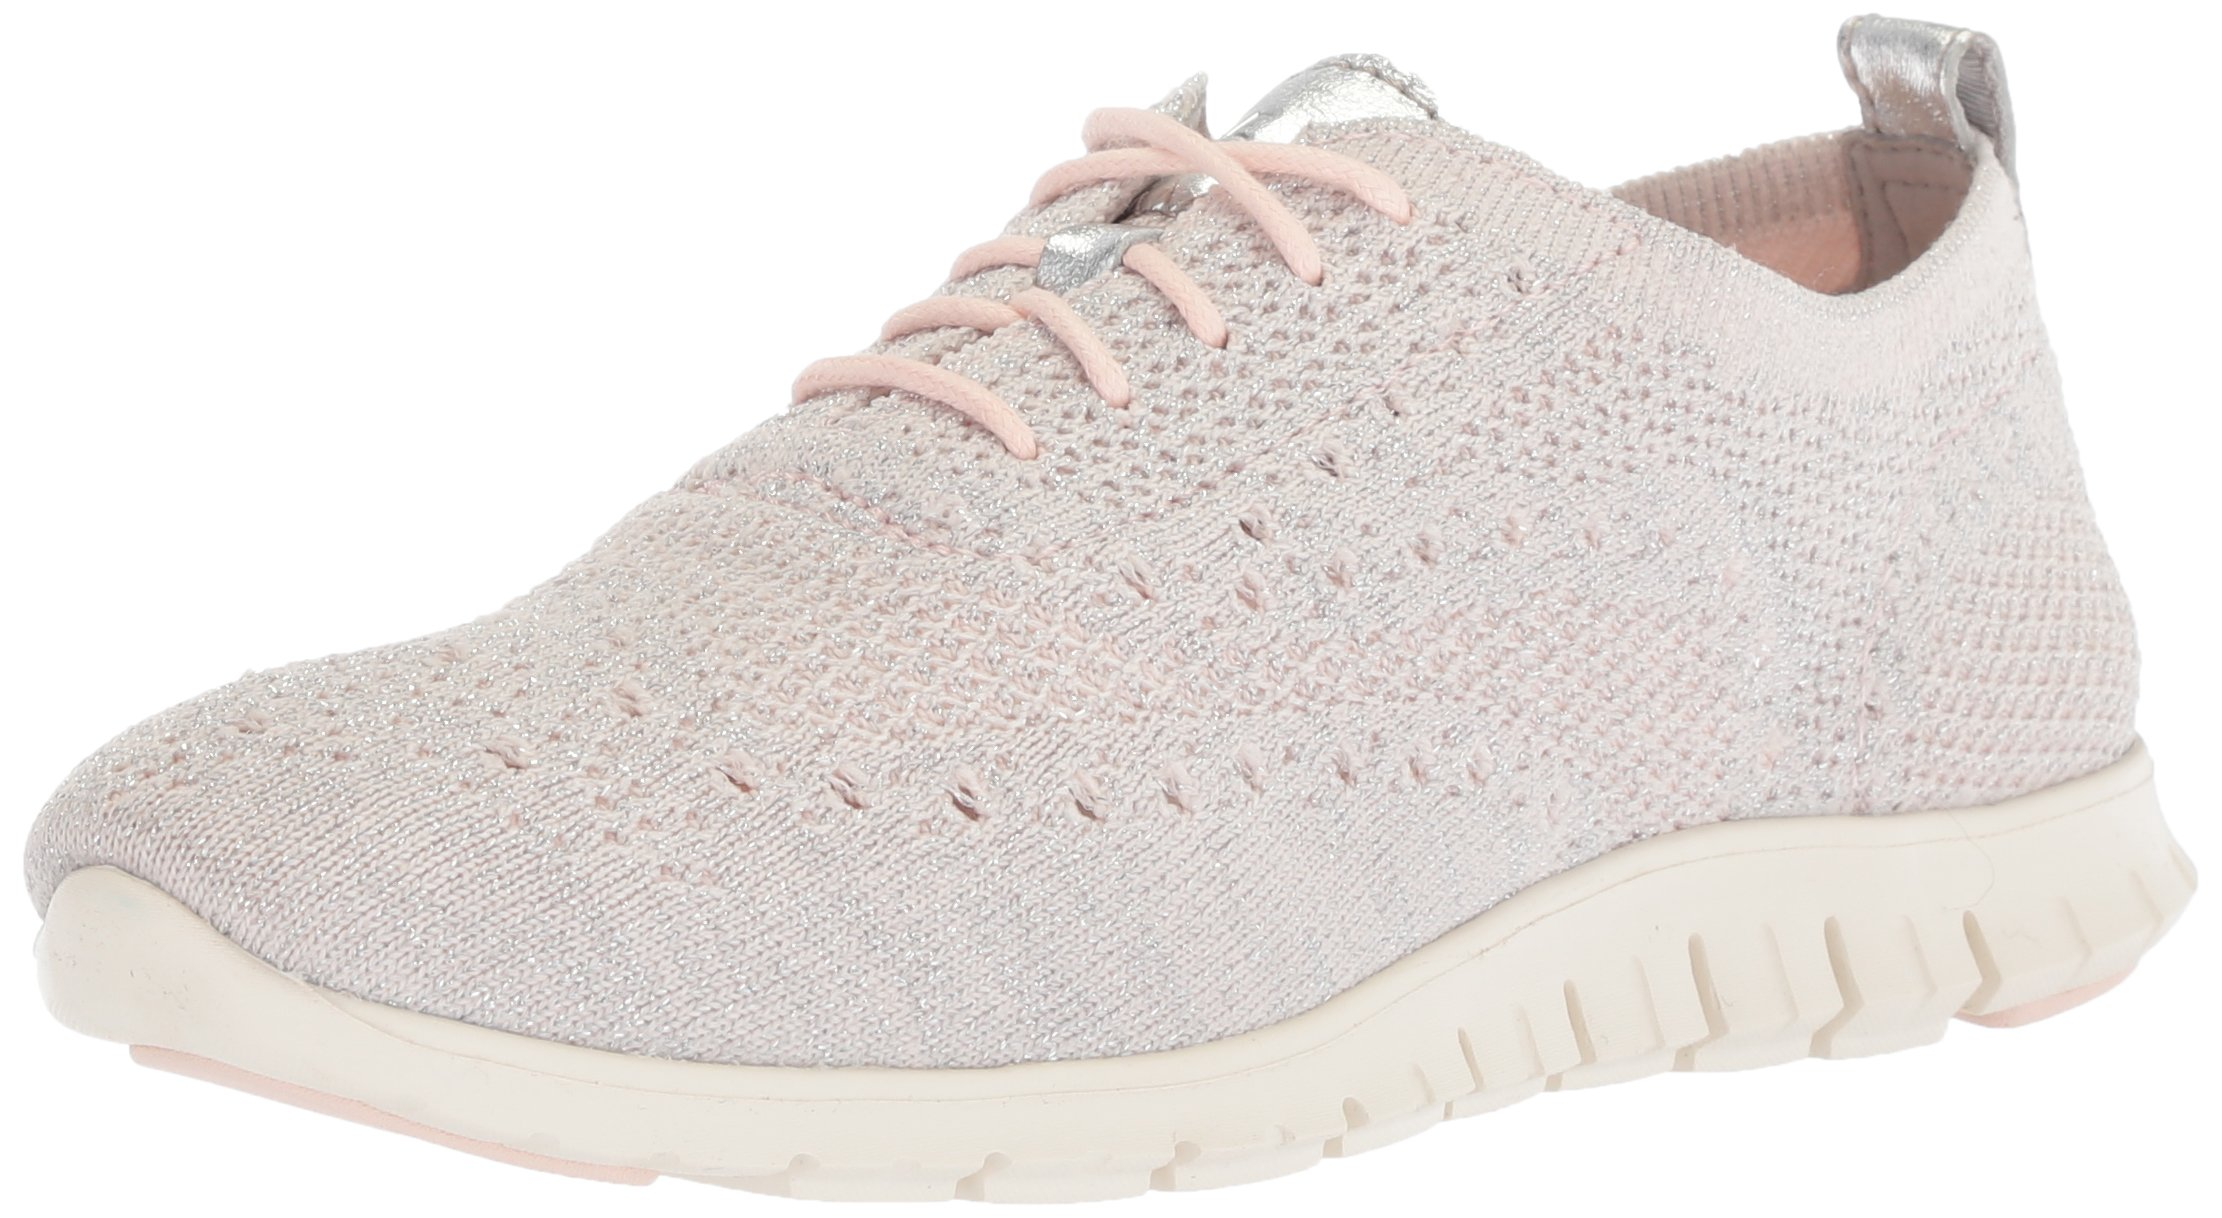 Cole Haan Women's Zerogrand Stitchlite Oxford, Peach Blush, 8.5 B US by Cole Haan (Image #1)